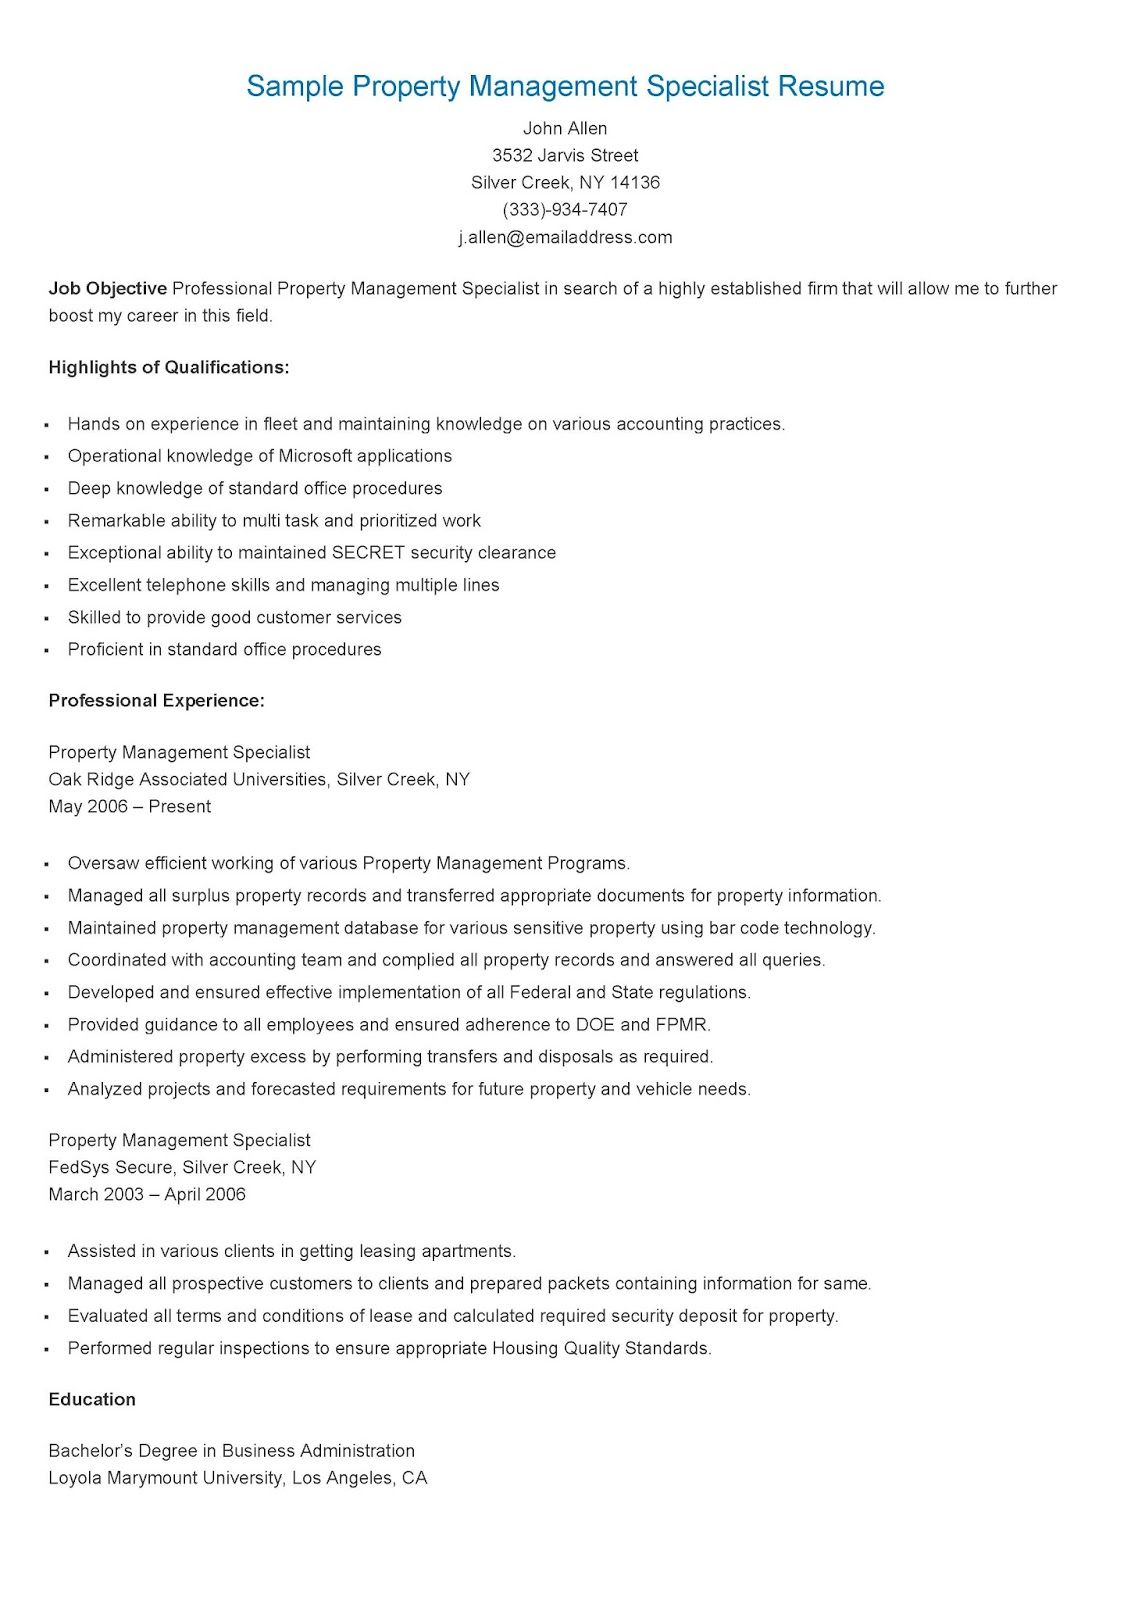 Property Management Resume Sample Property Management Specialist Resume  Resame  Pinterest